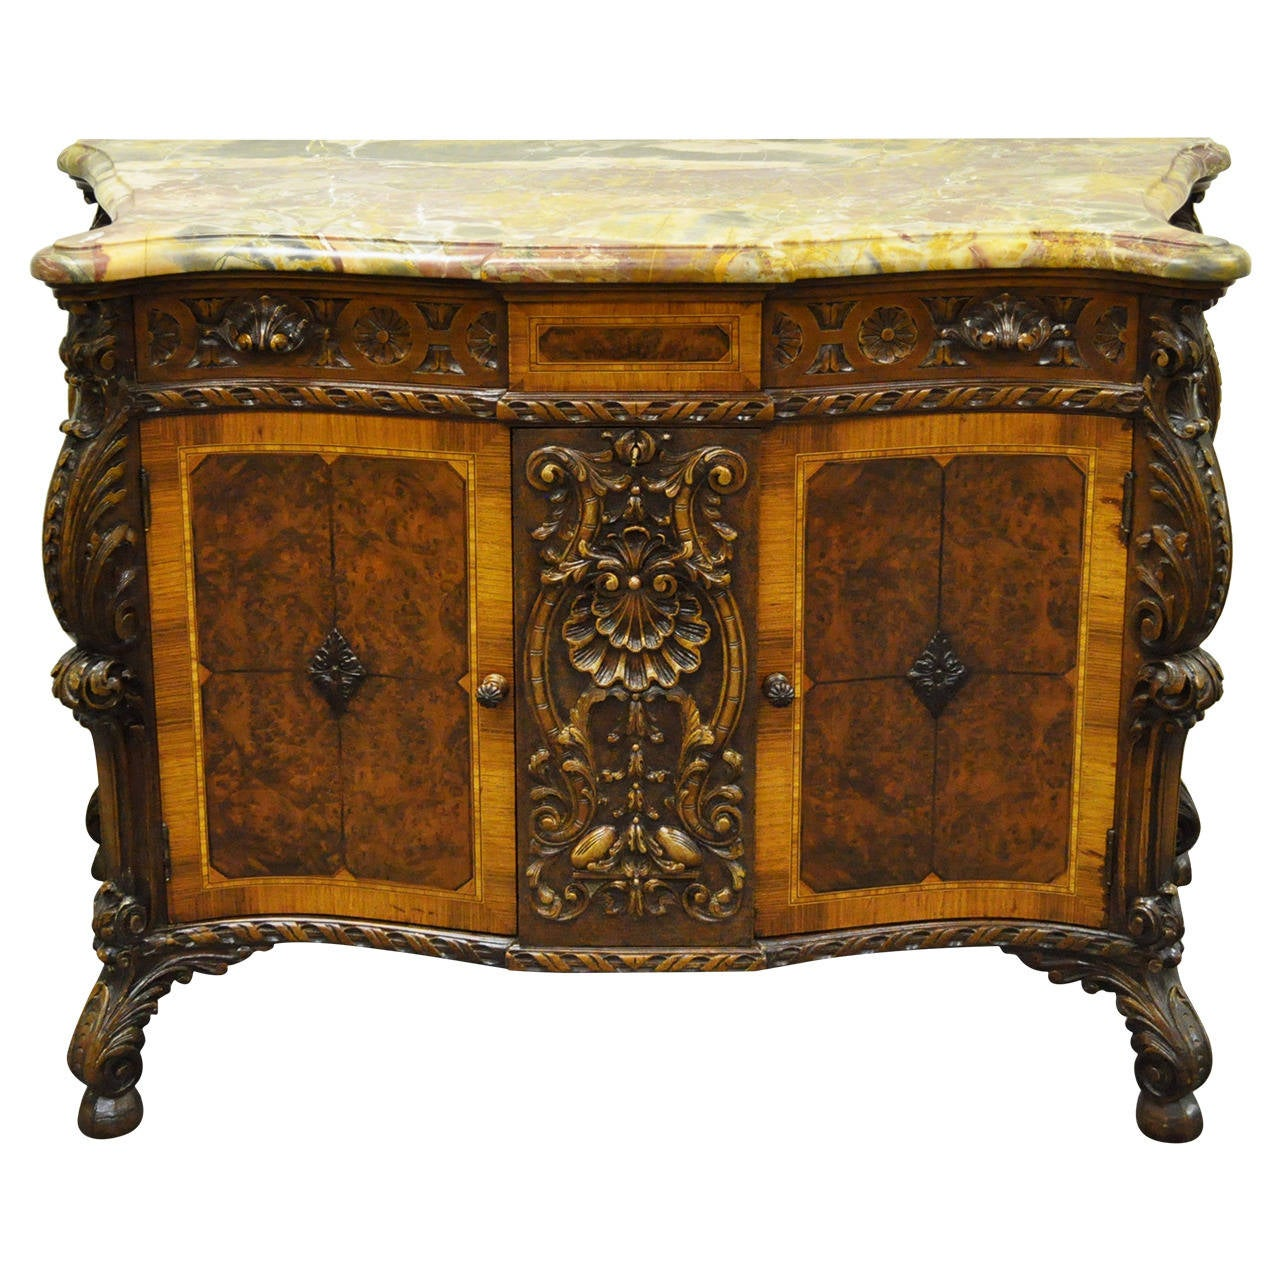 french louis xv or baroque style carved rogue marble top custom commode for sale at 1stdibs. Black Bedroom Furniture Sets. Home Design Ideas